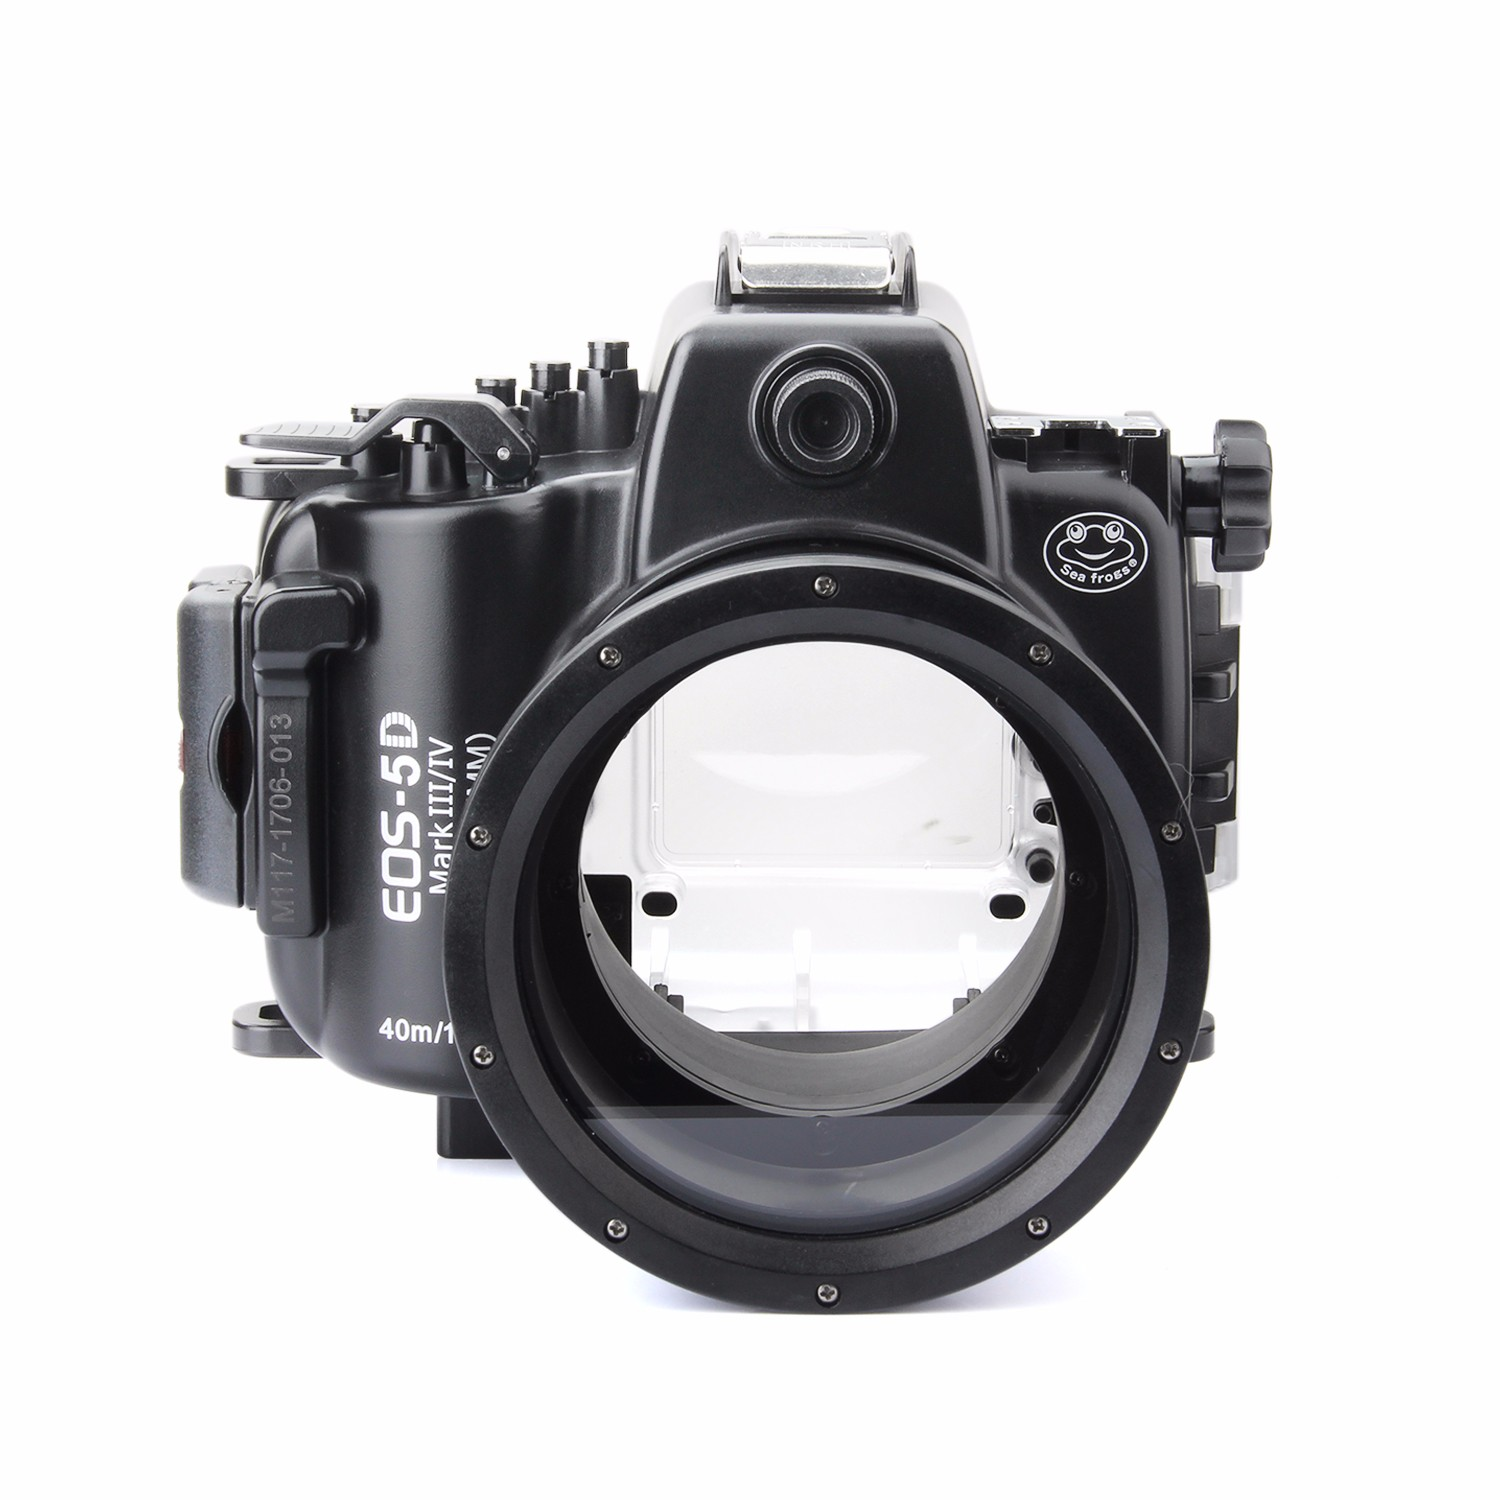 SeaFrogs 5D4 5D IV 40M 130ft Diving Waterproof Housing Case for Canon 5D III IV 5D3 5D4 Supports 24-105mm Lens + WA-1 Fisheye цена 2017